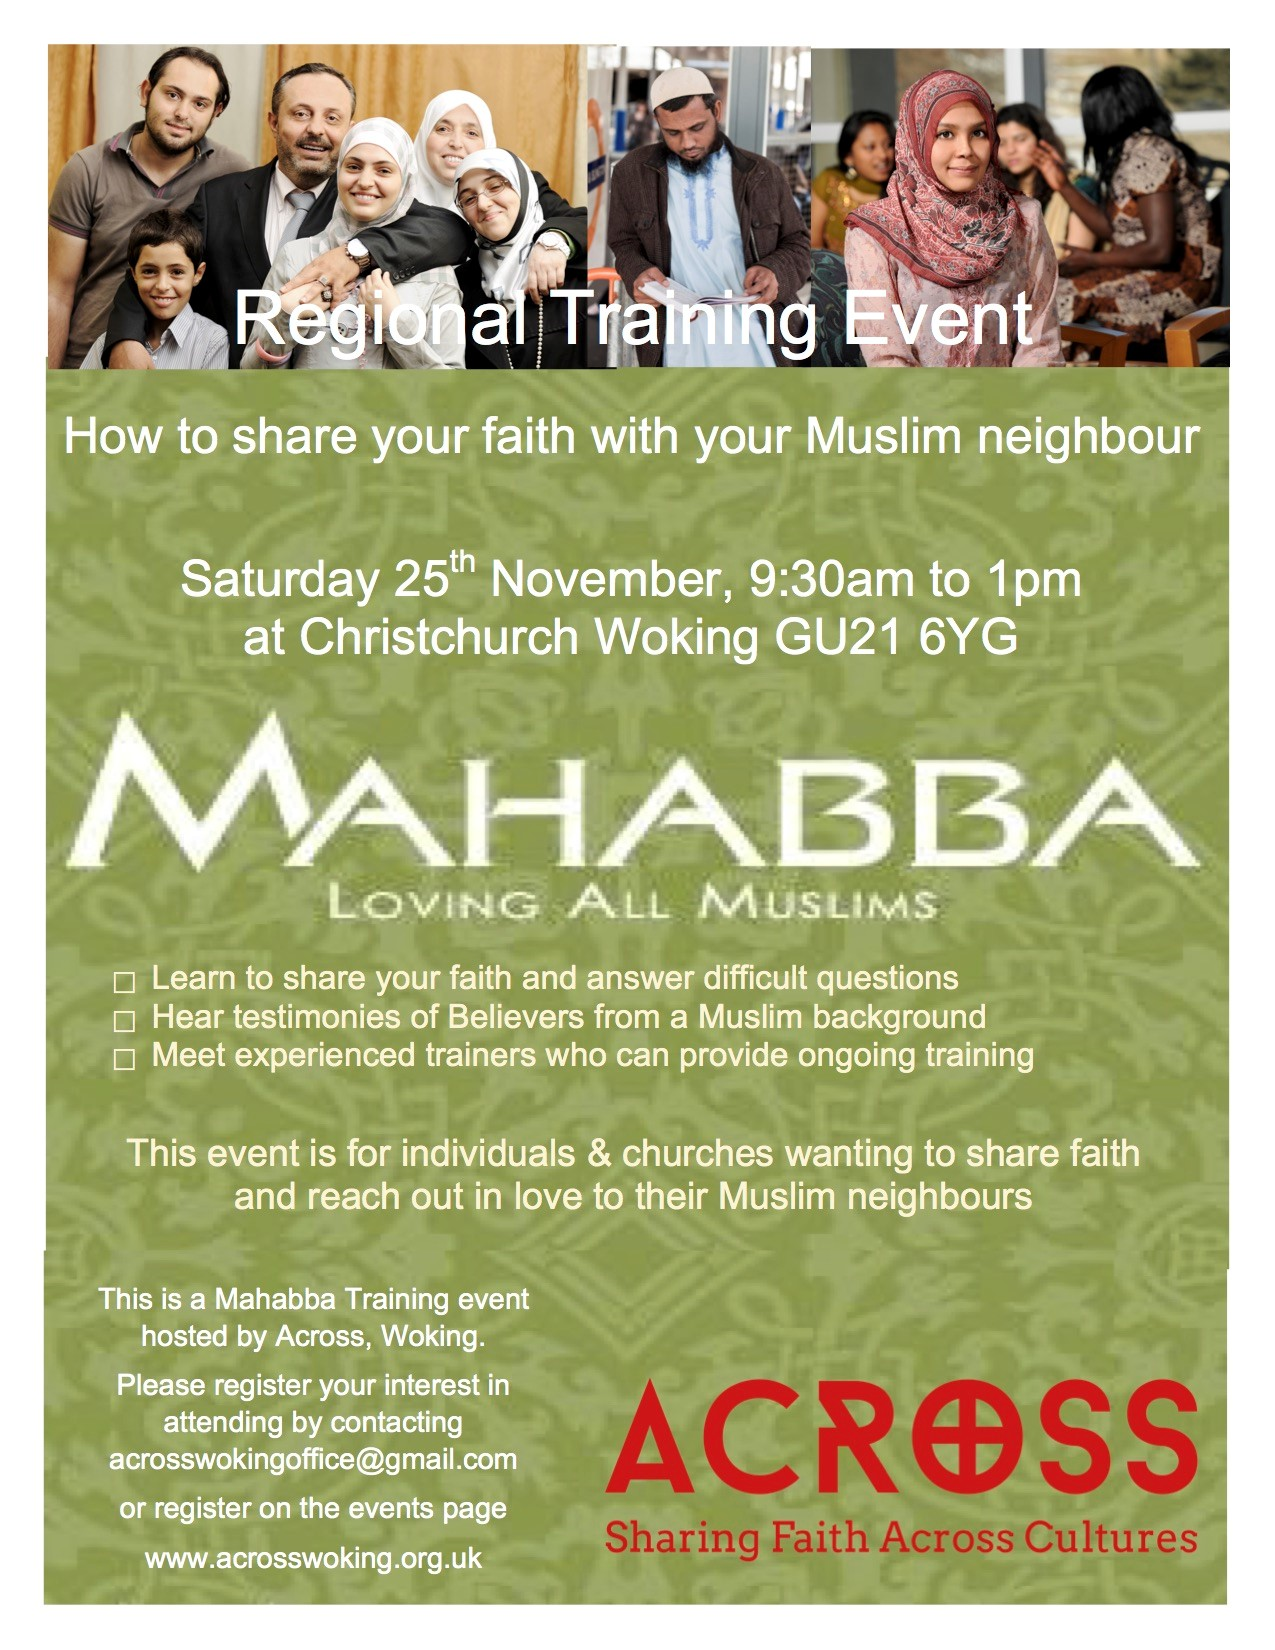 Mahabba Woking training event: How to share your faith with your Muslim neighbours